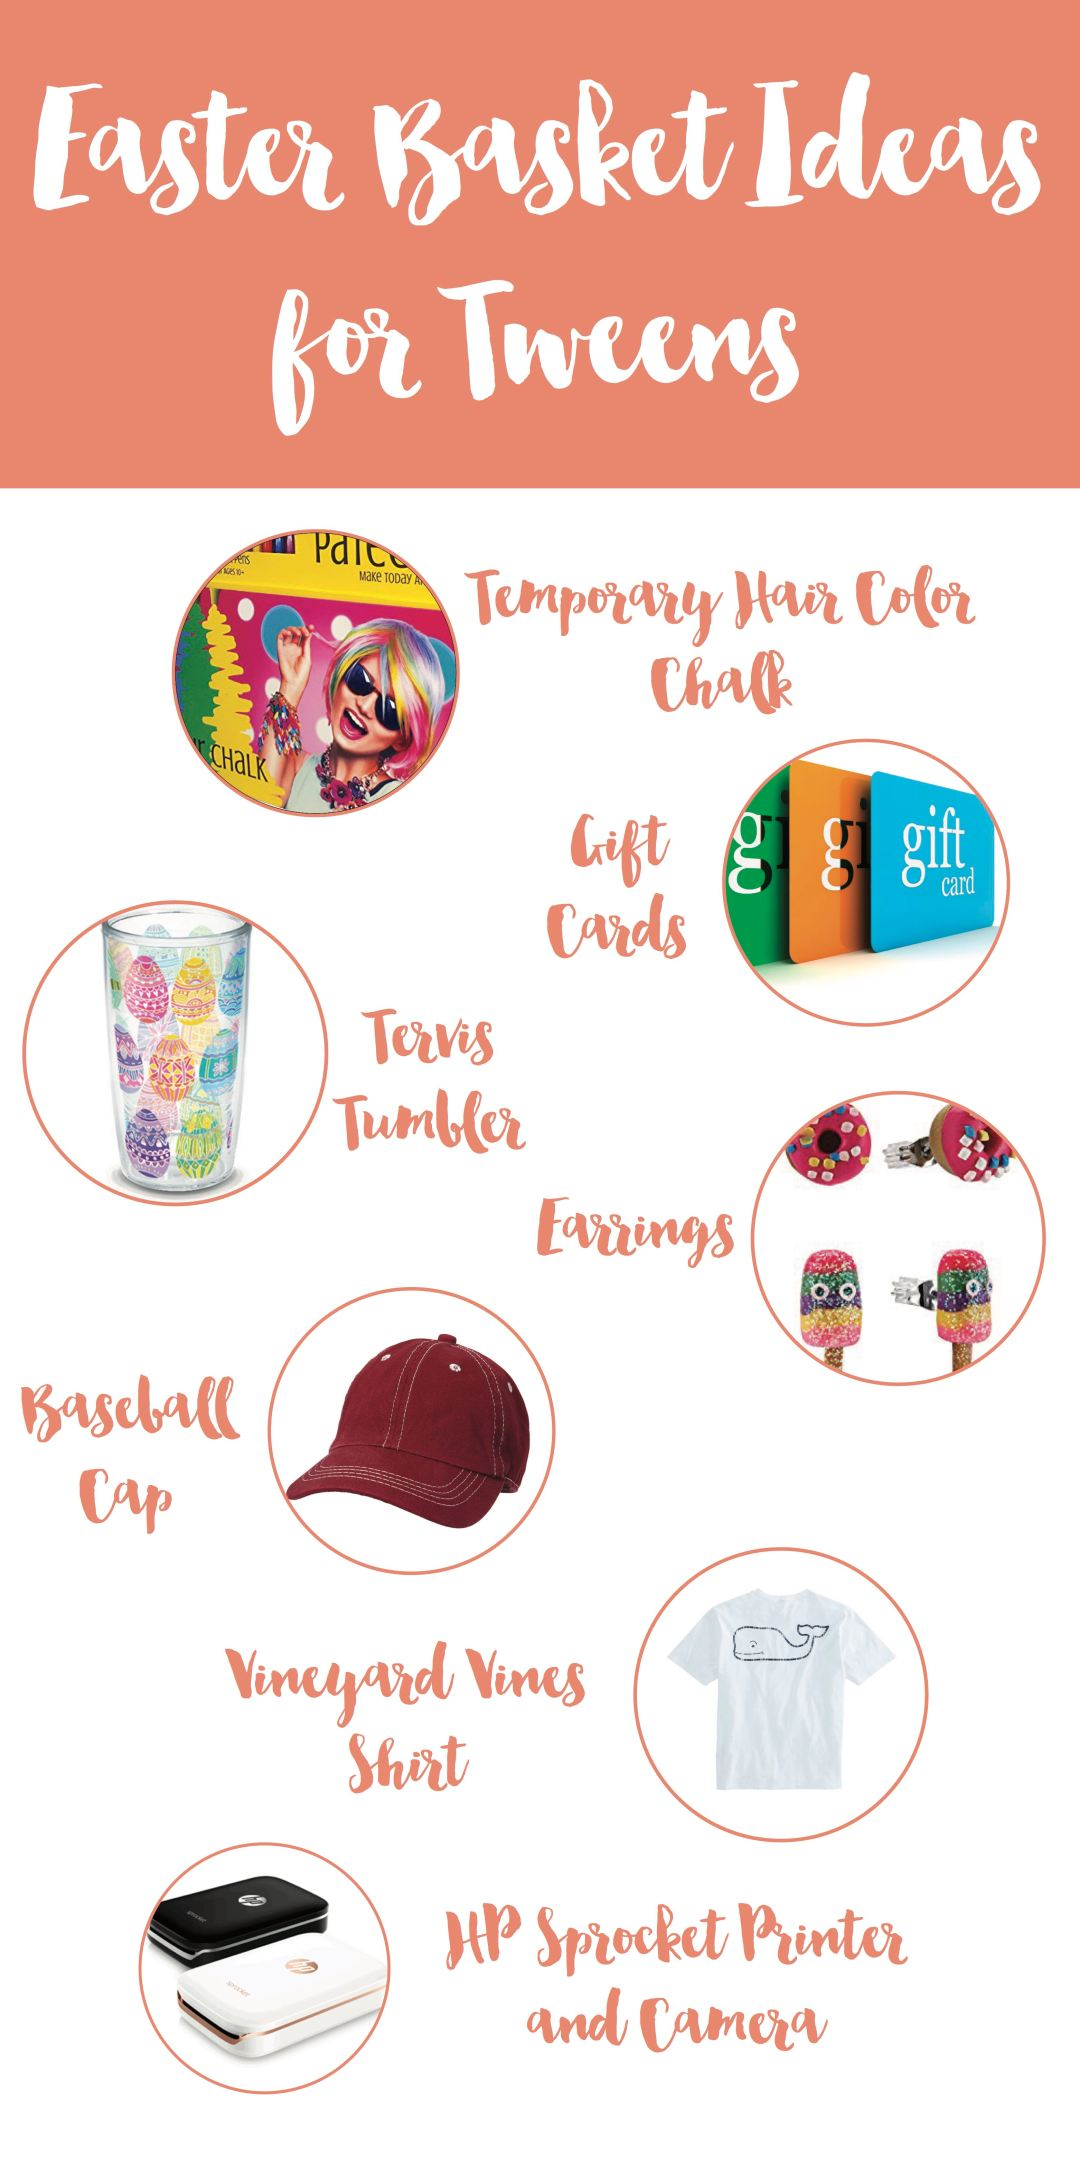 Everyday Party Magazine Easter Basket Ideas Tween #Easter #GiftGuide #Teen